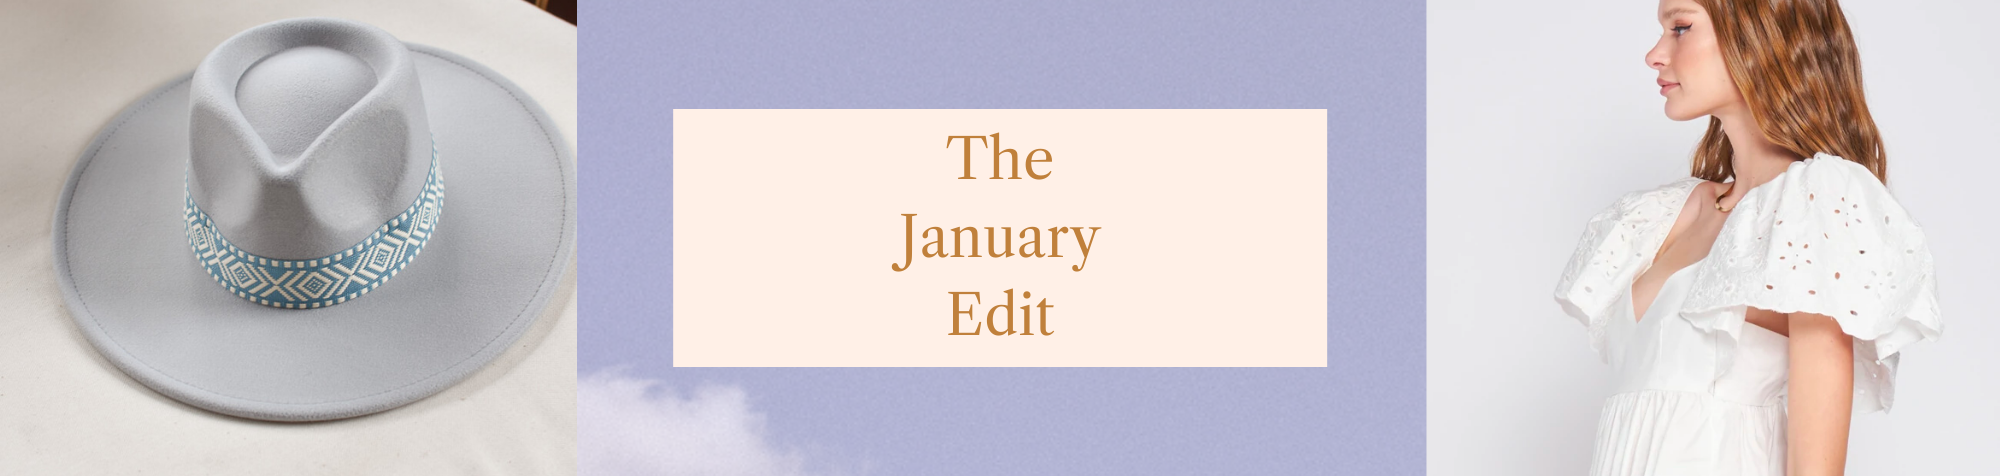 The January Edit